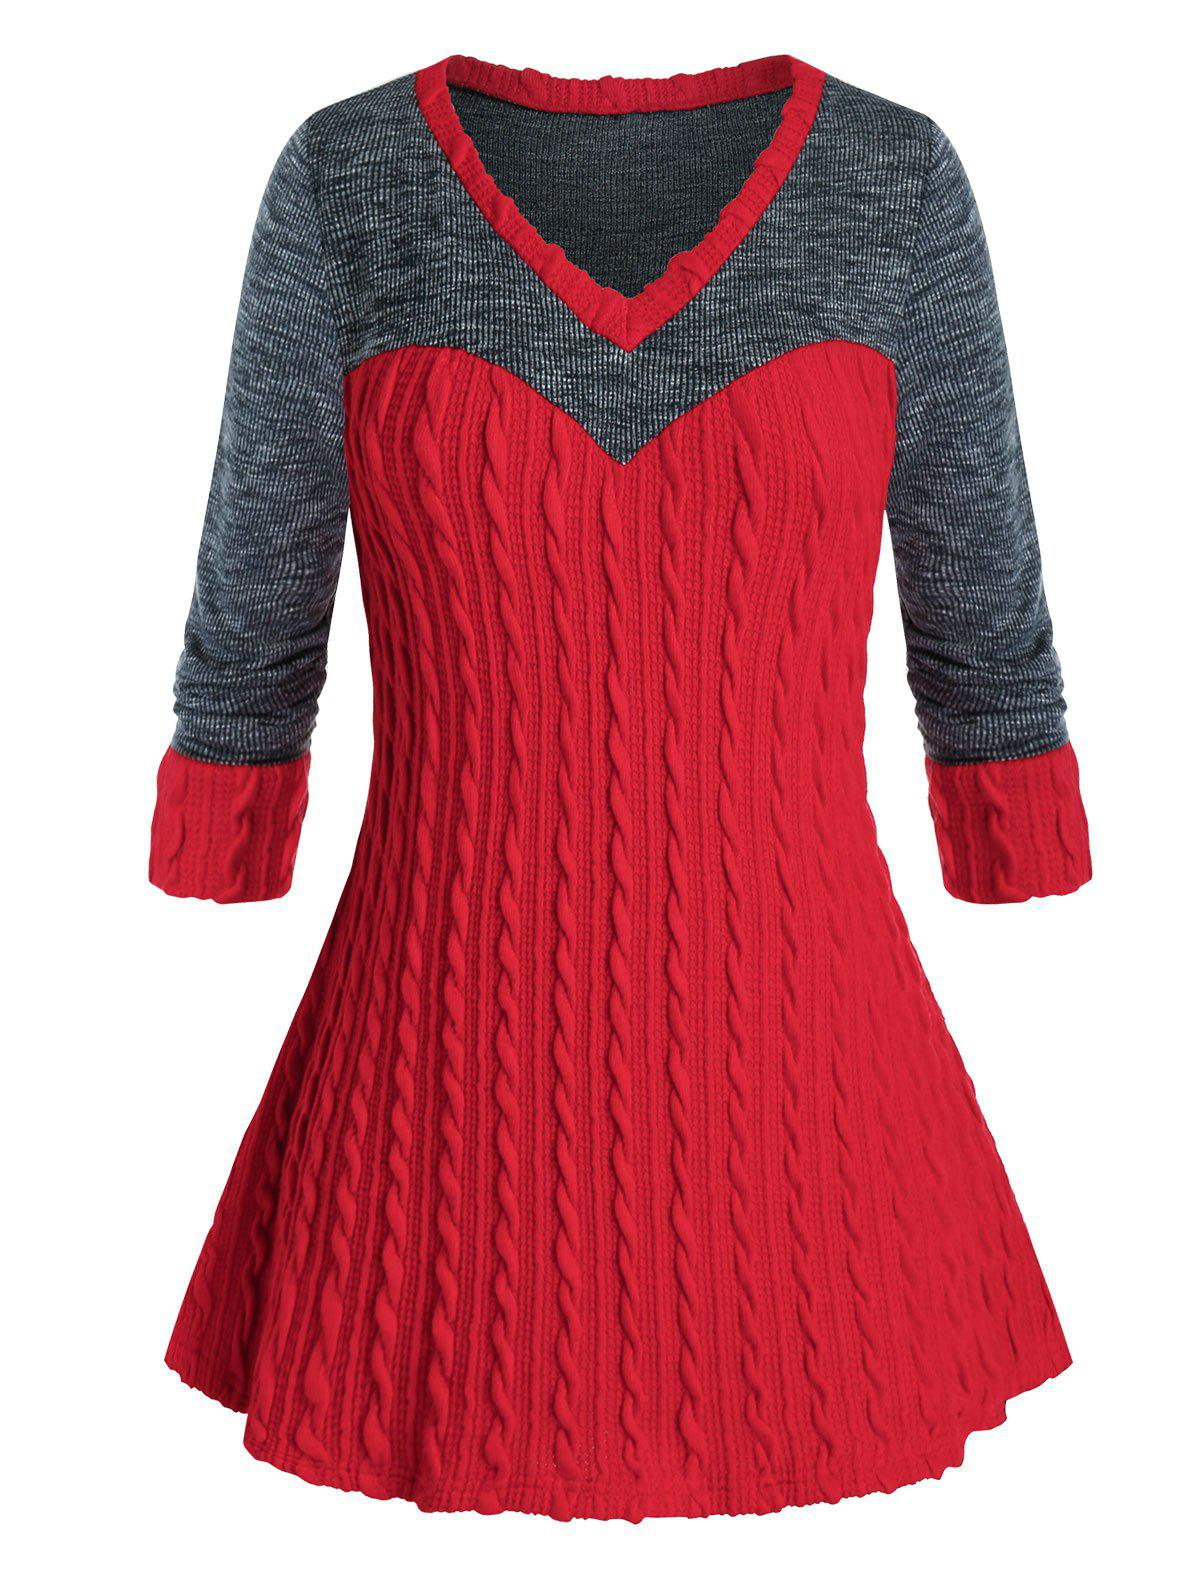 Plus Size Two Tone Cable Knit Tunic Sweater - multicolor 3X